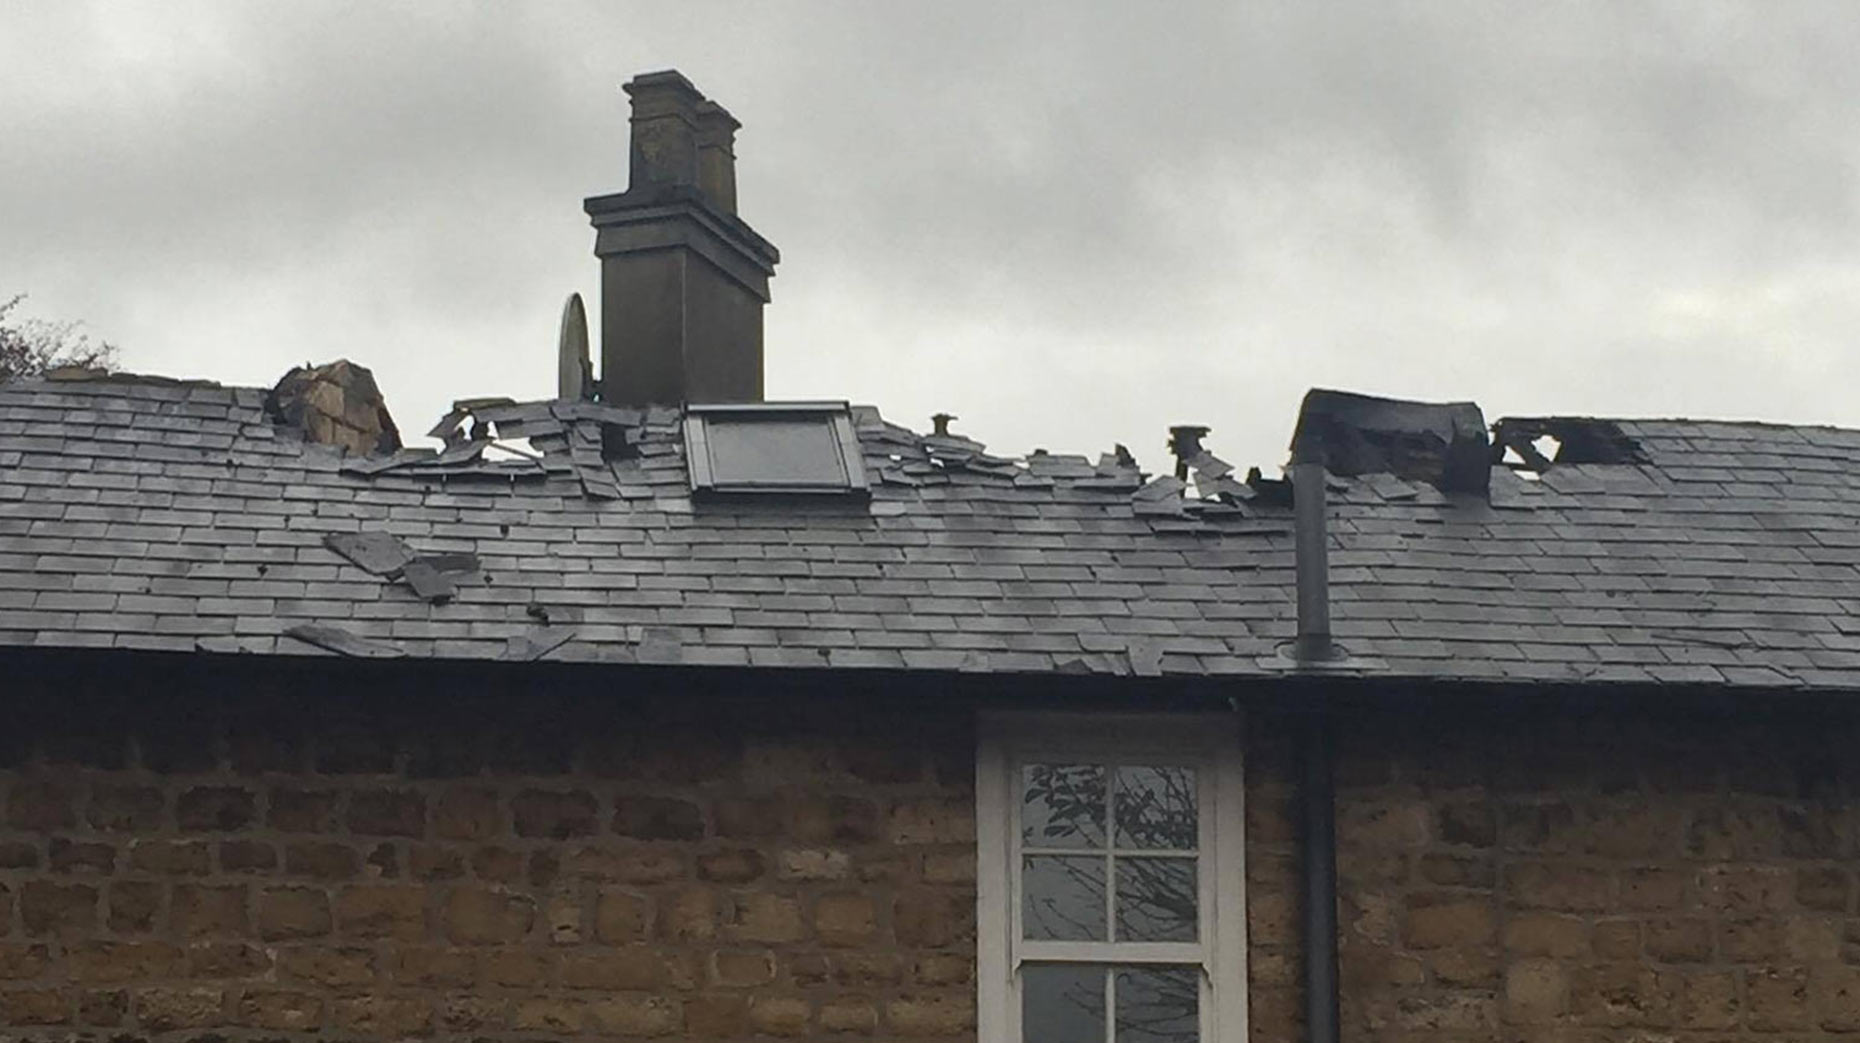 Damage was caused to around 60% of the property. Photo: Sarah Harrison-Barker